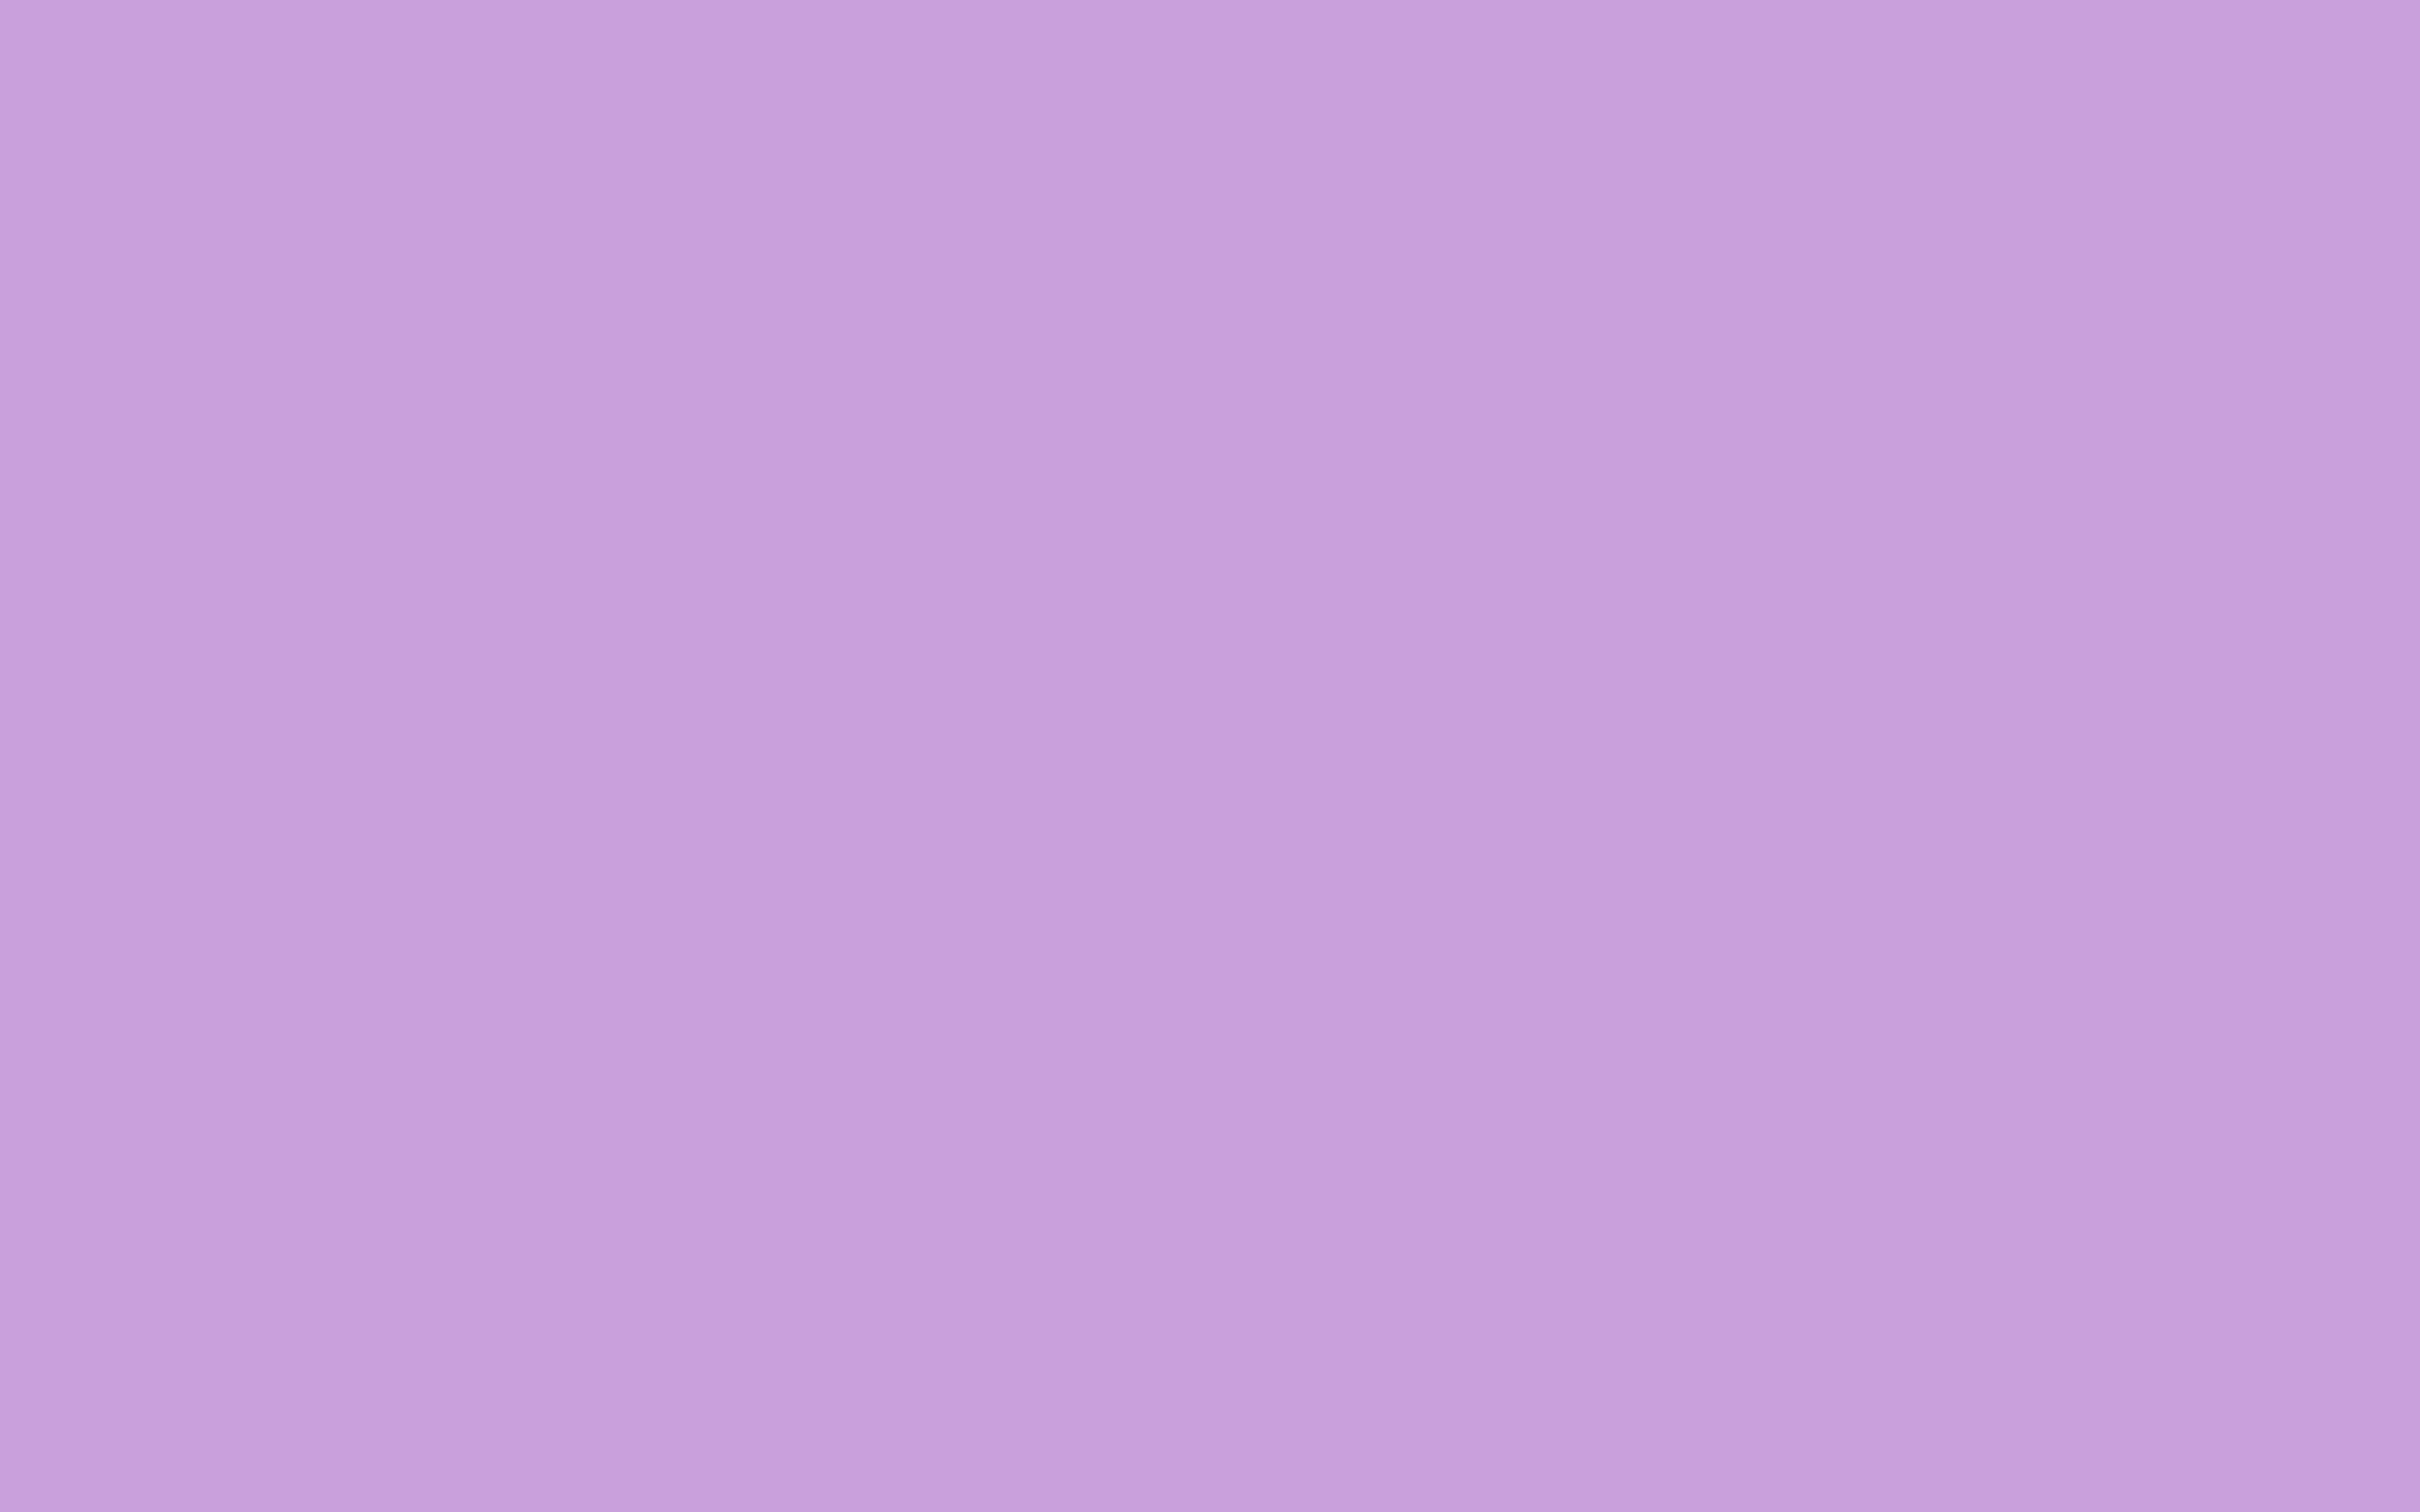 2560x1600 Wisteria Solid Color Background